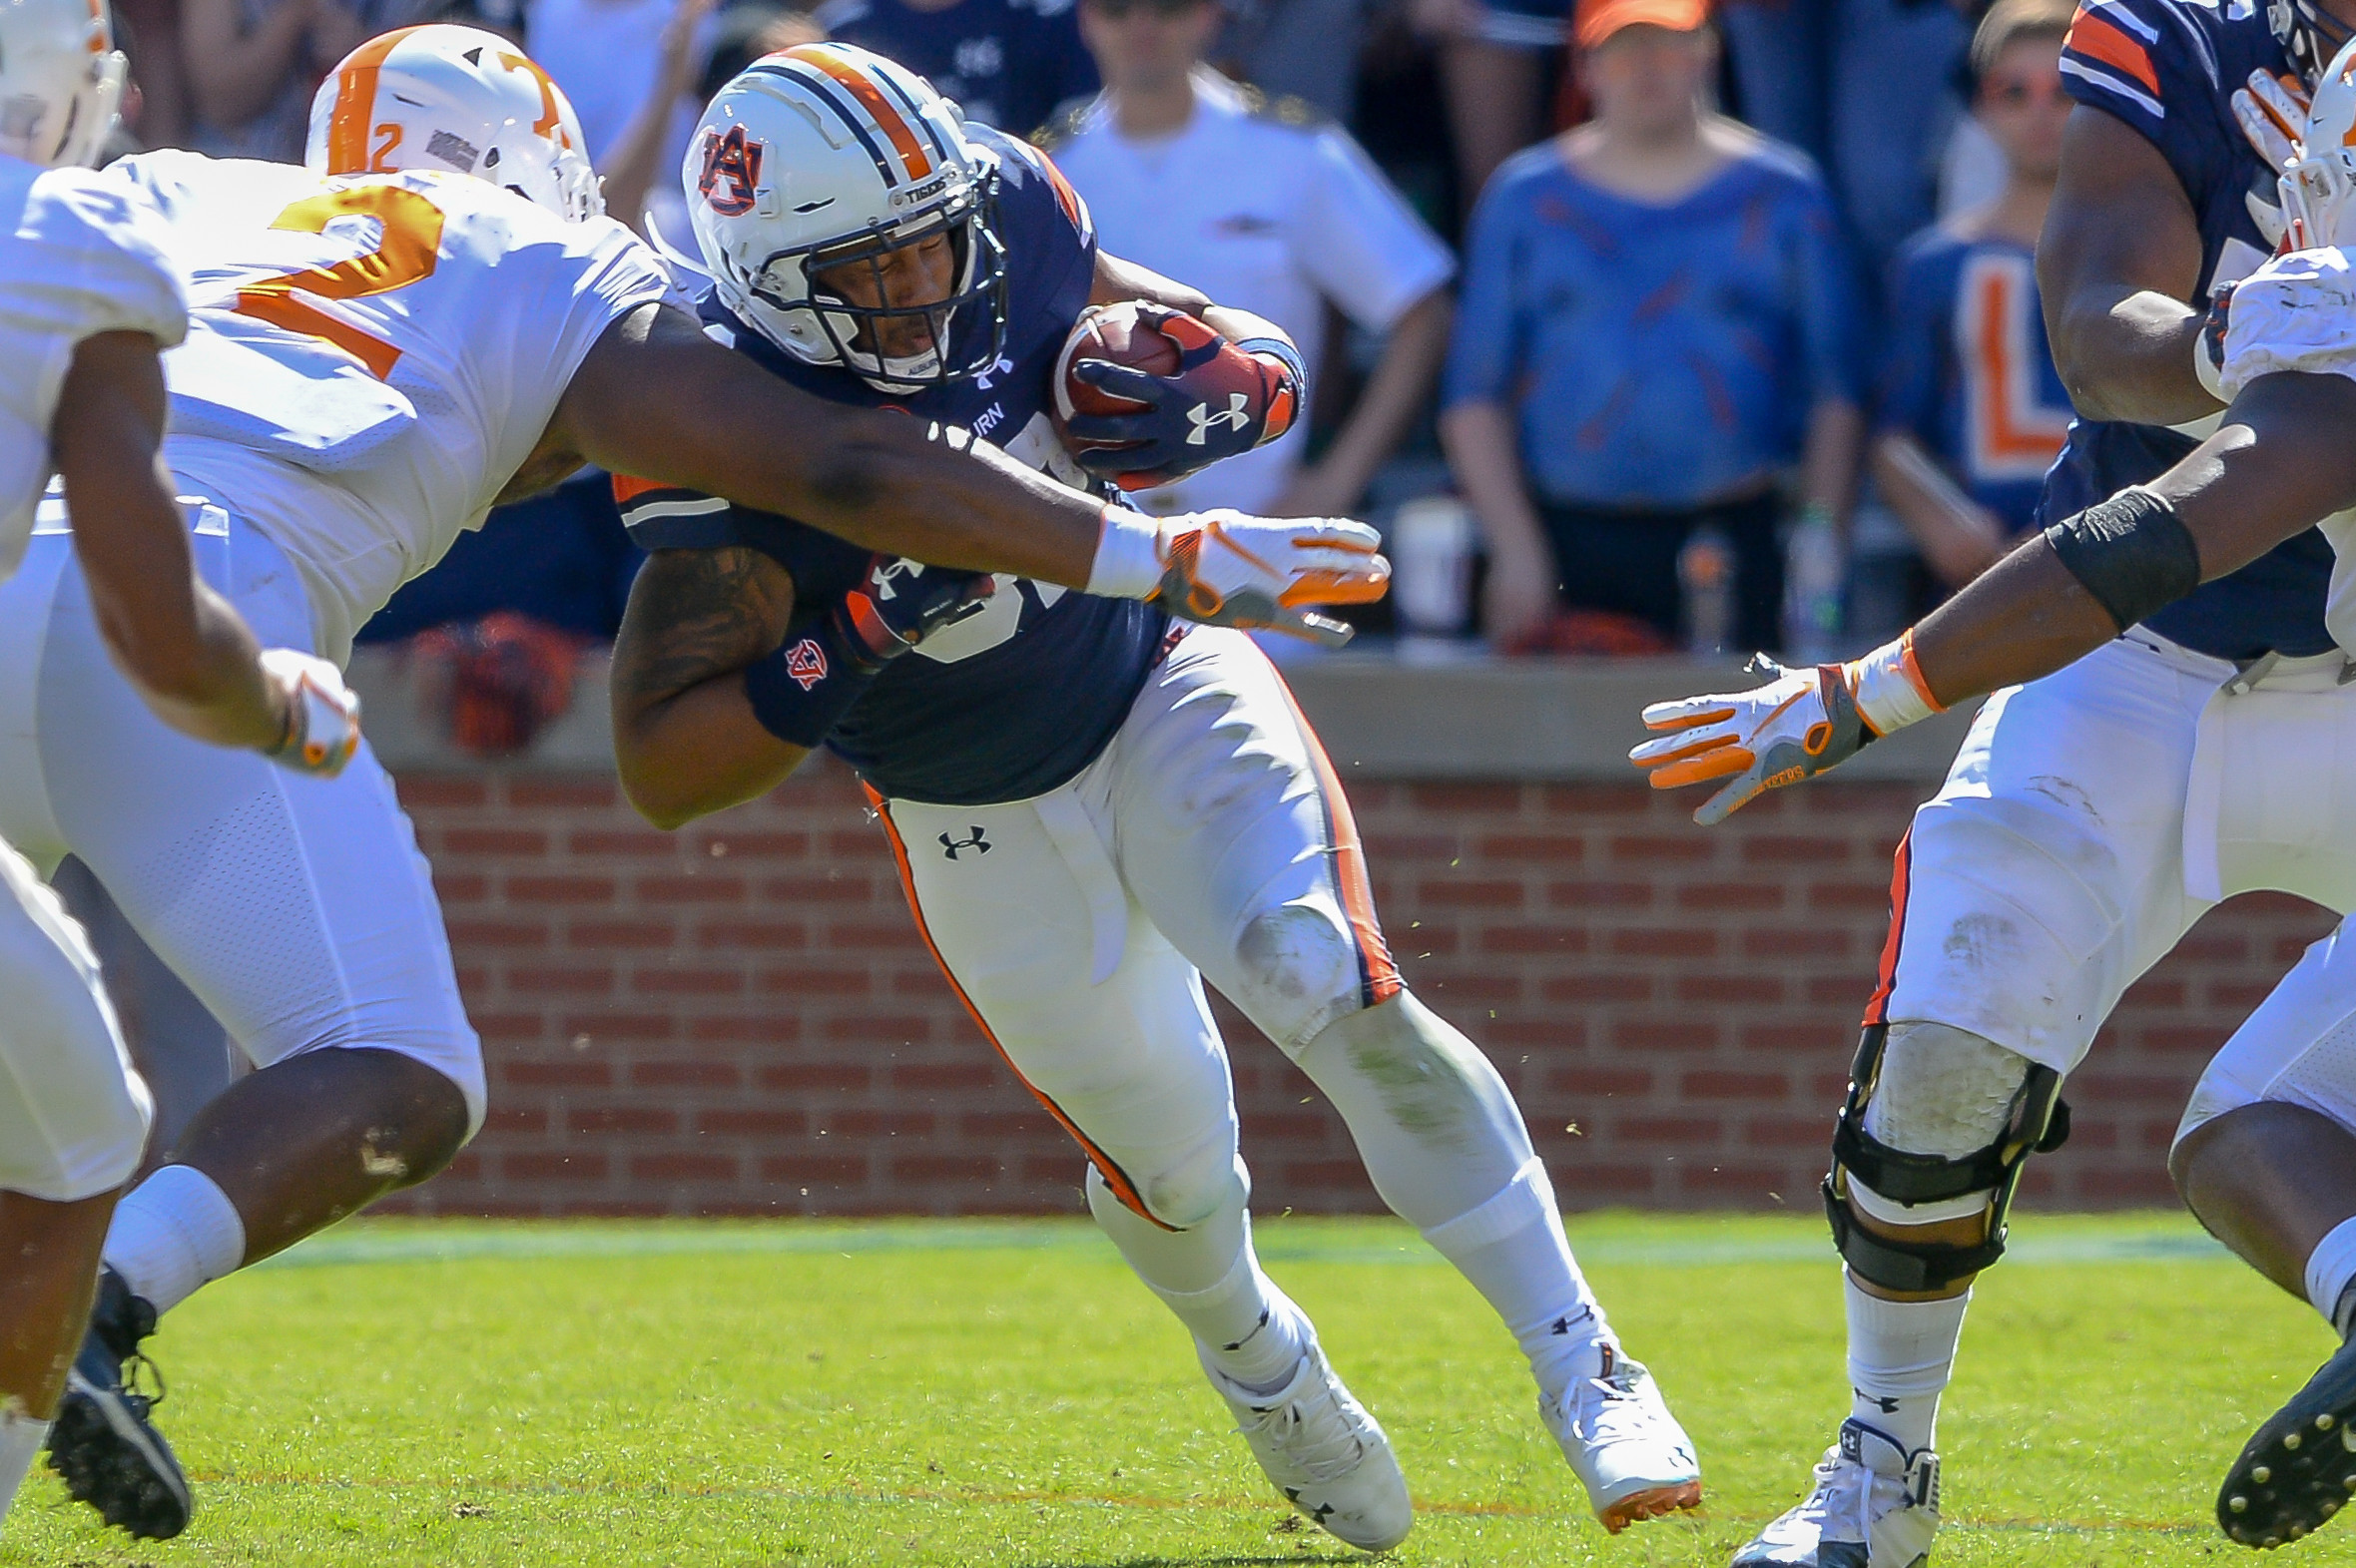 Tennessee Volunteers defensive lineman Shy Tuttle (2) makes a tackle on Auburn Tigers running back Malik Miller (32) during the second half of Saturday's game, at Jordan-Hare Stadium in Auburn, AL. Daily Mountain Eagle -  Jeff Johnsey